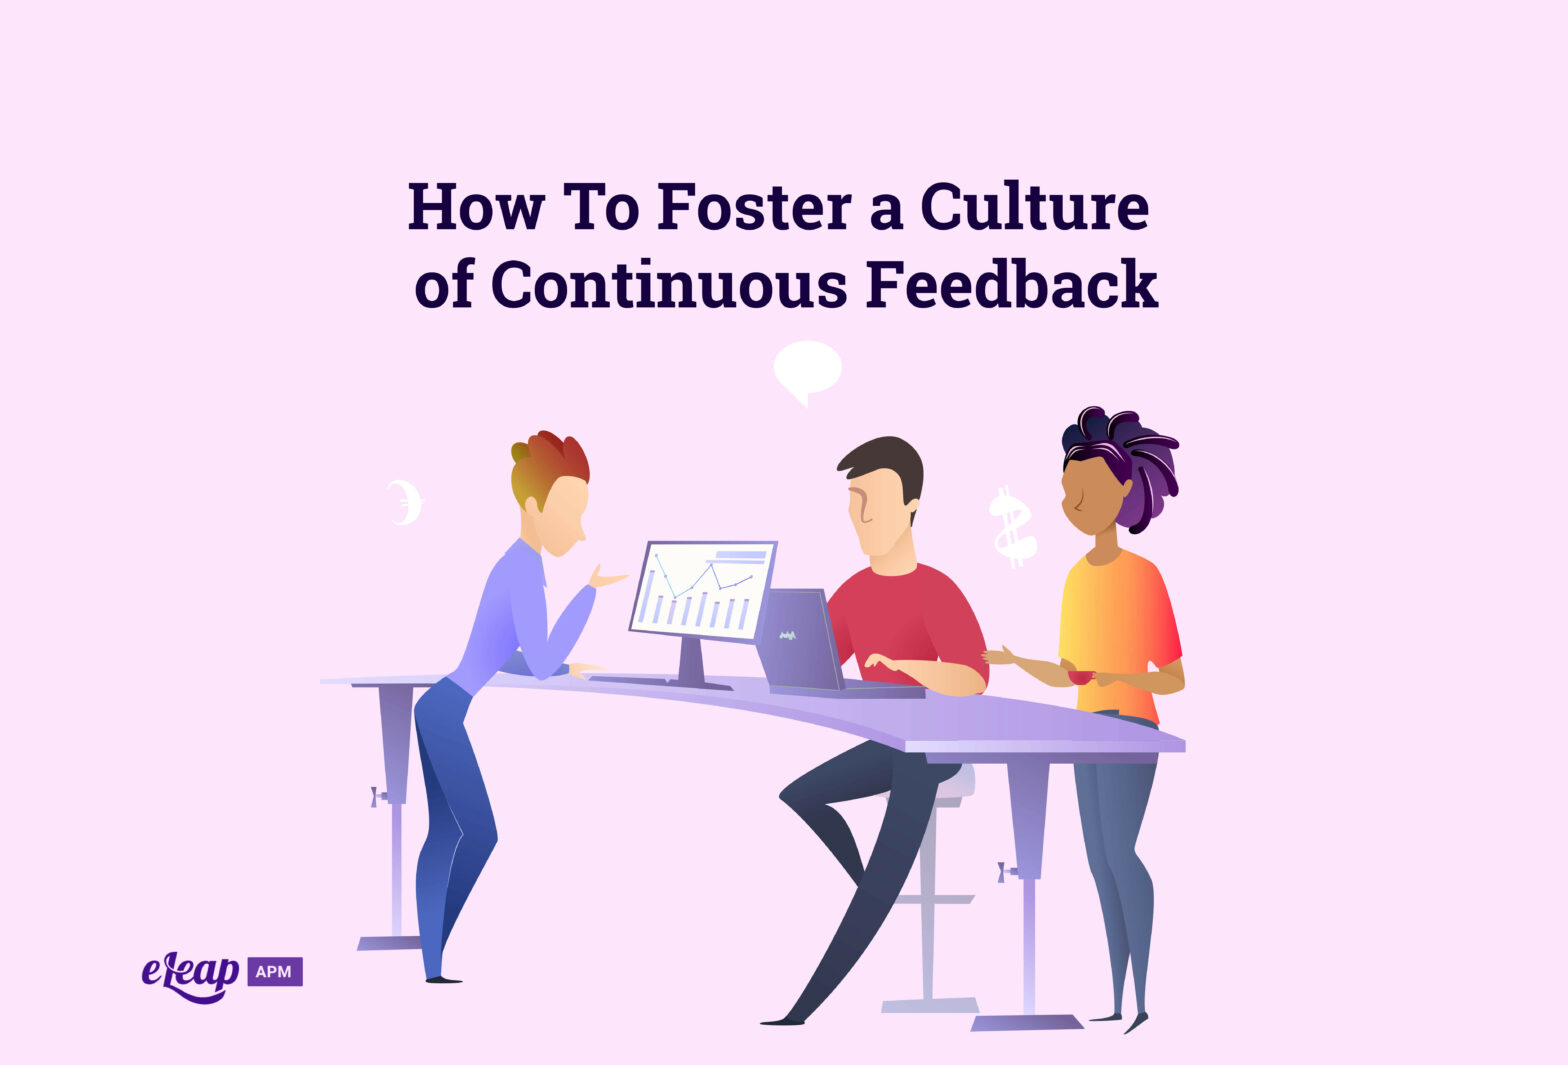 How To Foster a Culture of Continuous Feedback